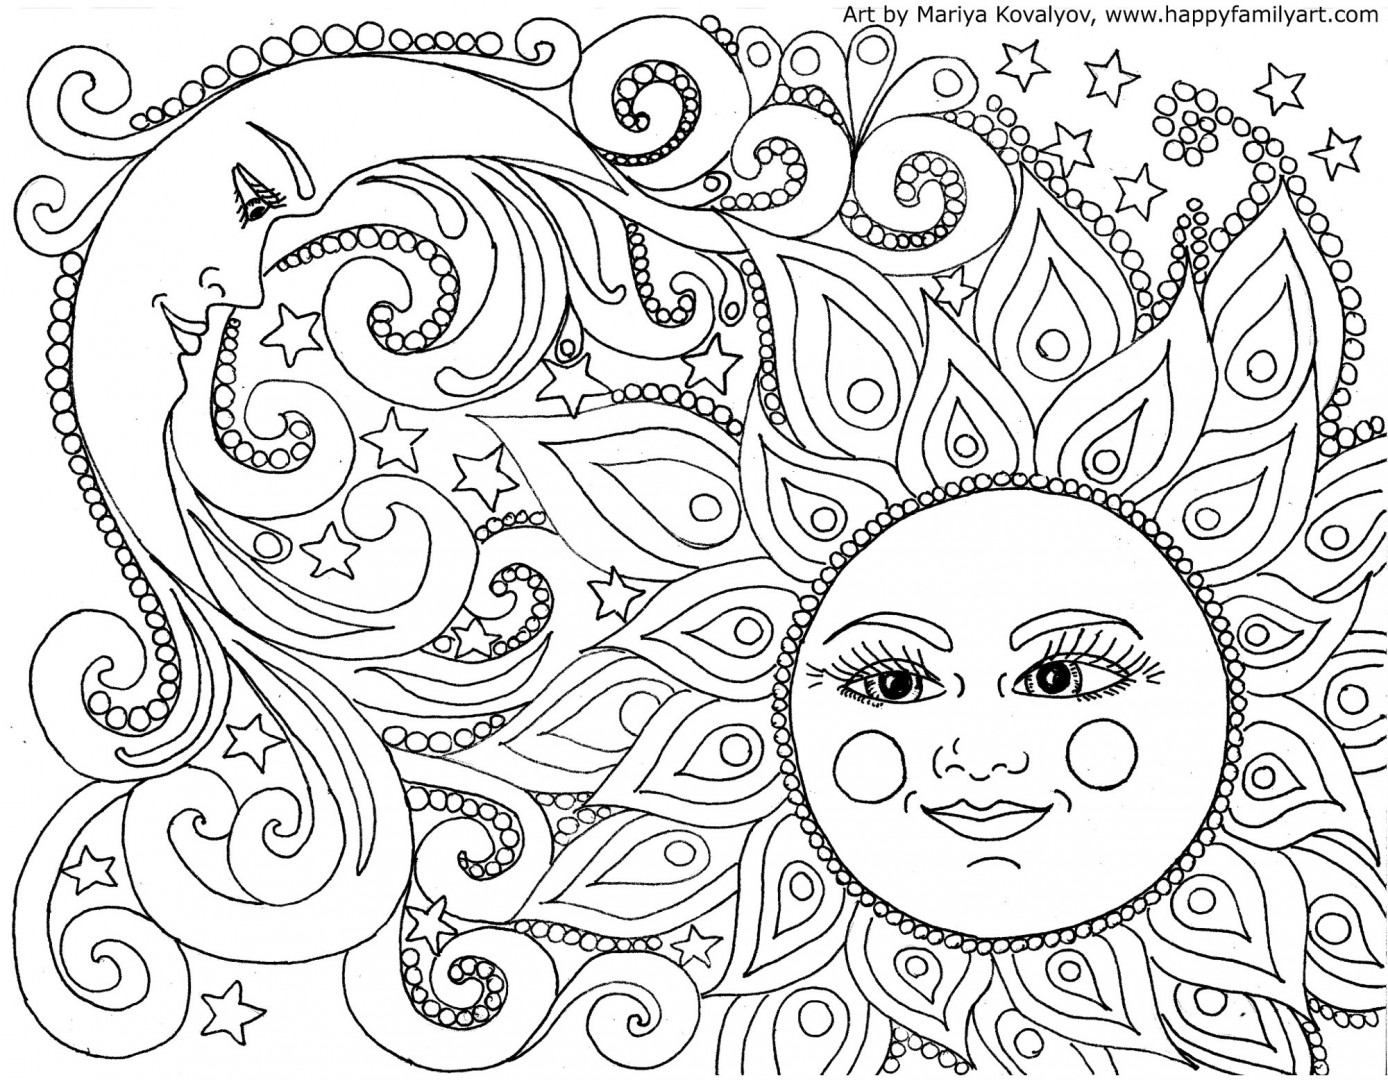 1388x1080 Coloring Pages Printable Of Hippie Stuff For Girls In Amusing